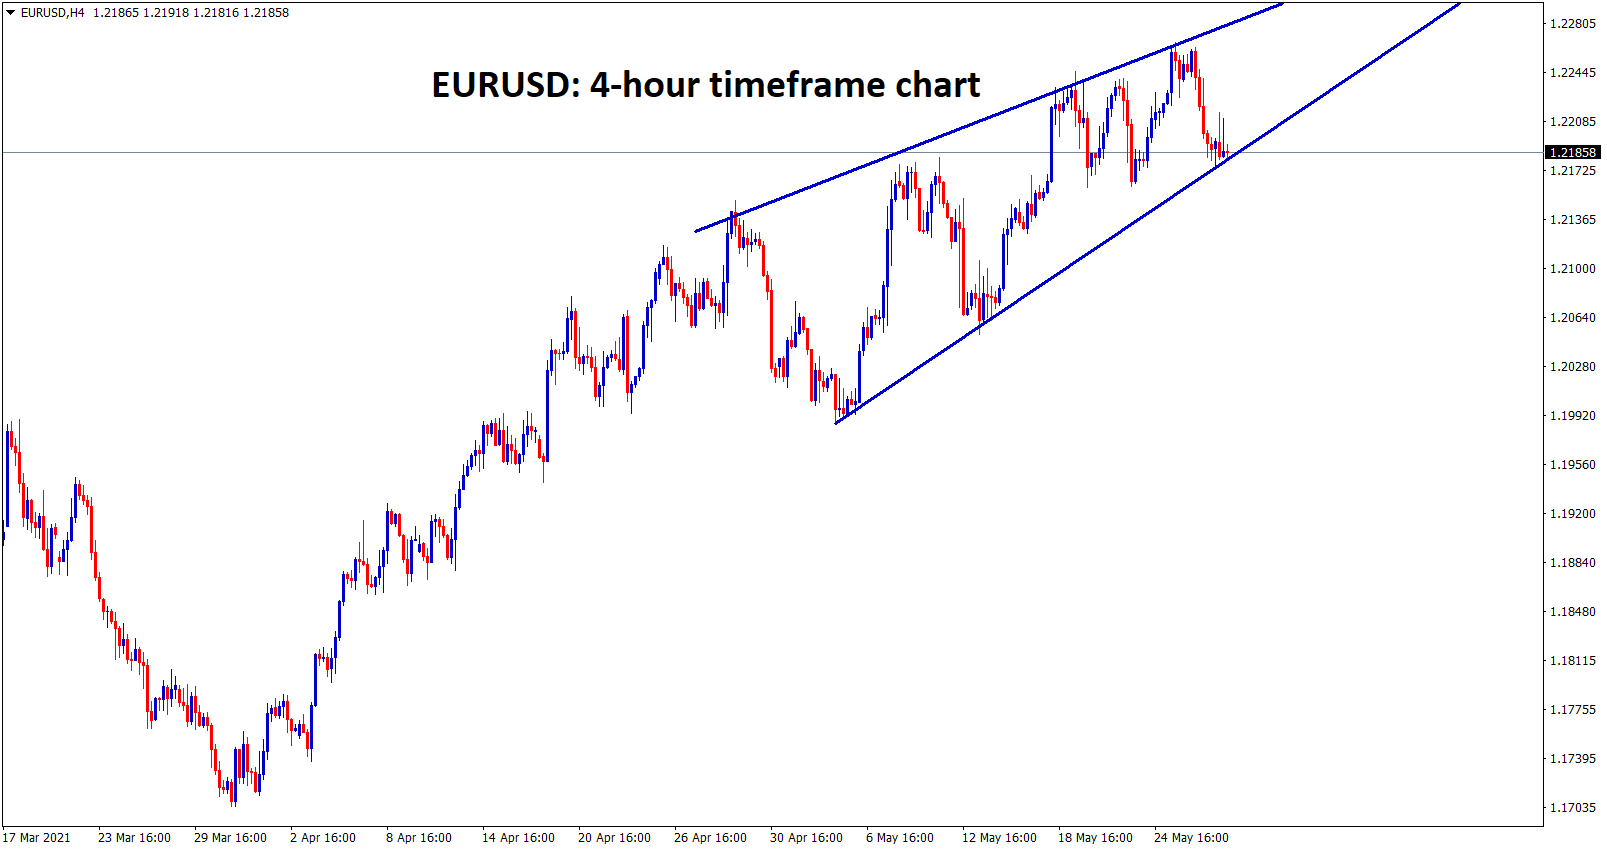 EURUSD has formed a rising wedge pattern